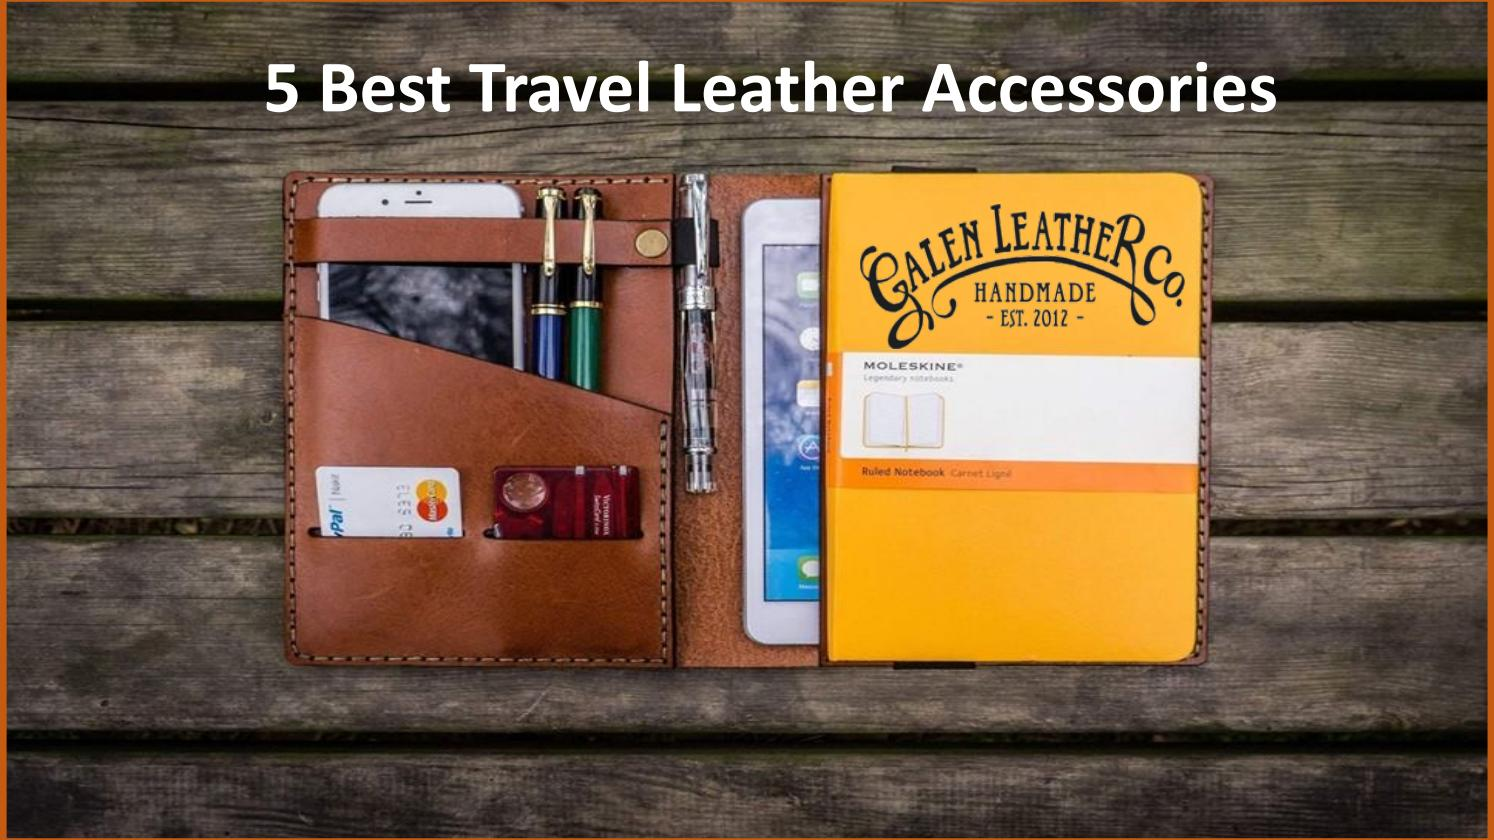 Luxury Travel Accessories By Galen Leather By Galen Leather Issuu